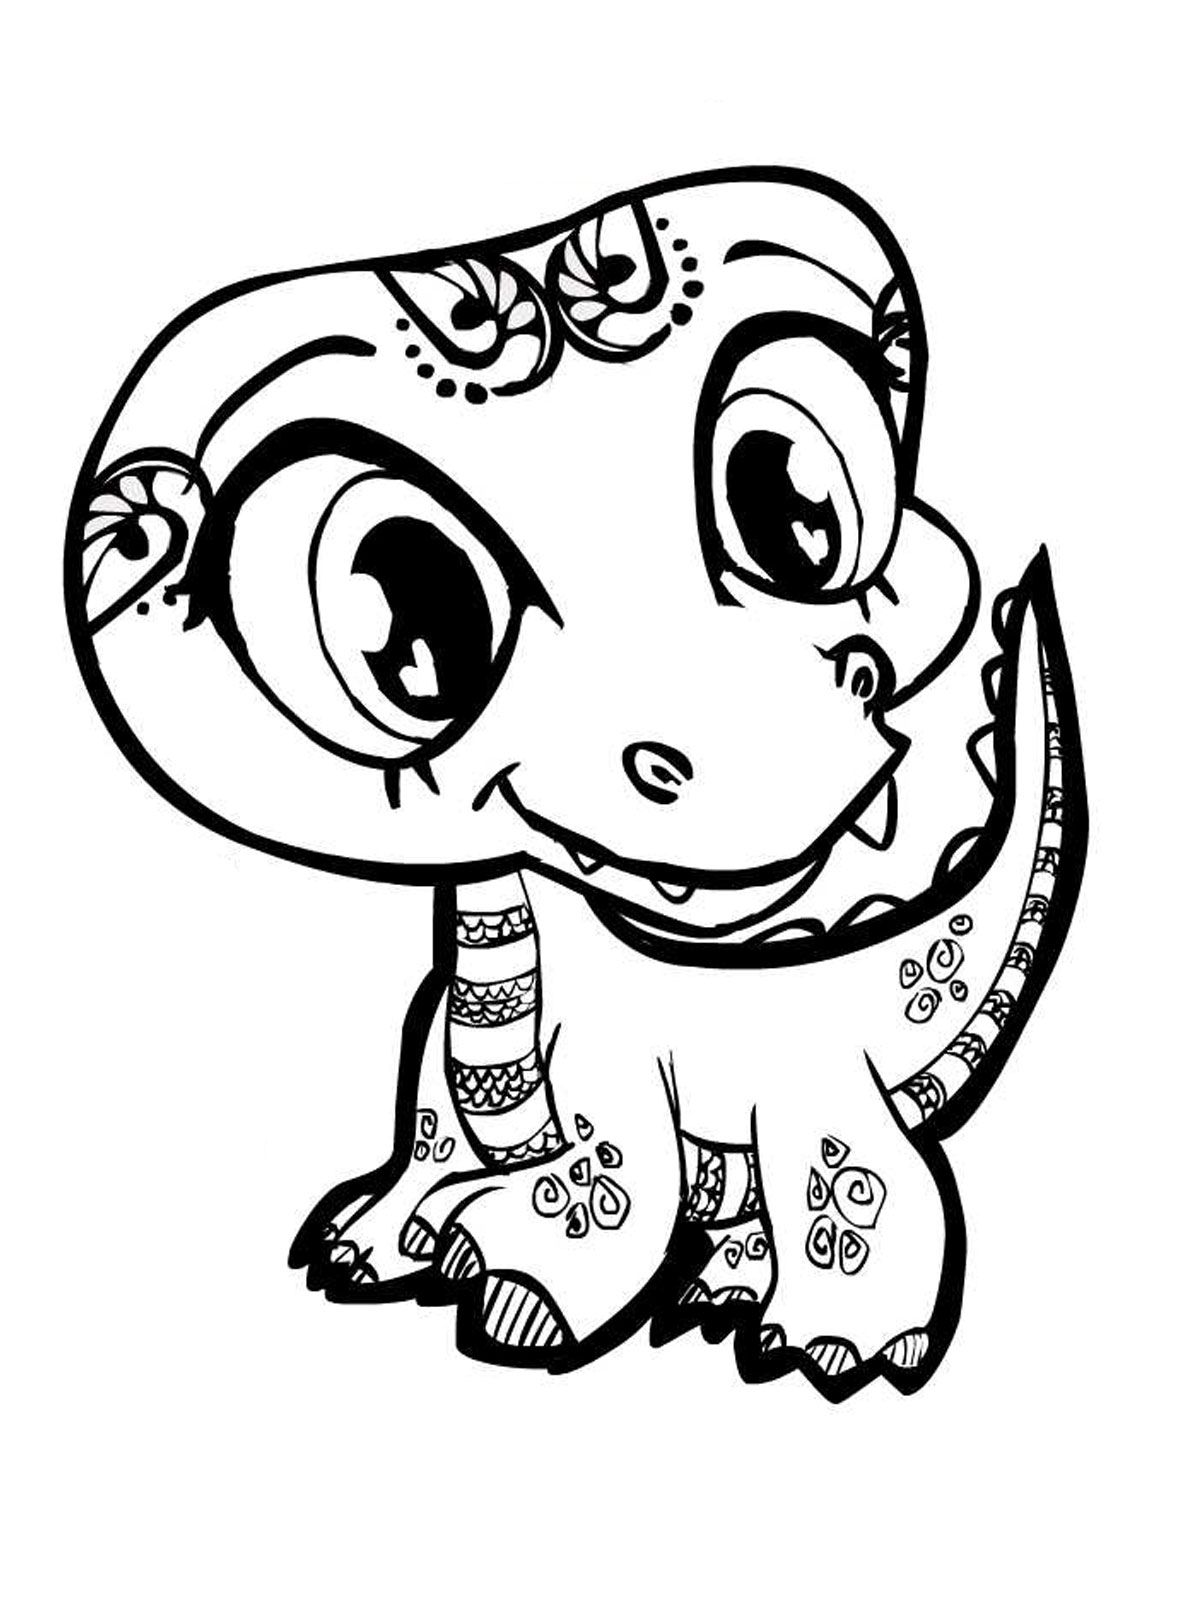 20+ Free Printable Alligator Coloring Pages - EverFreeColoring.com | 1600x1200